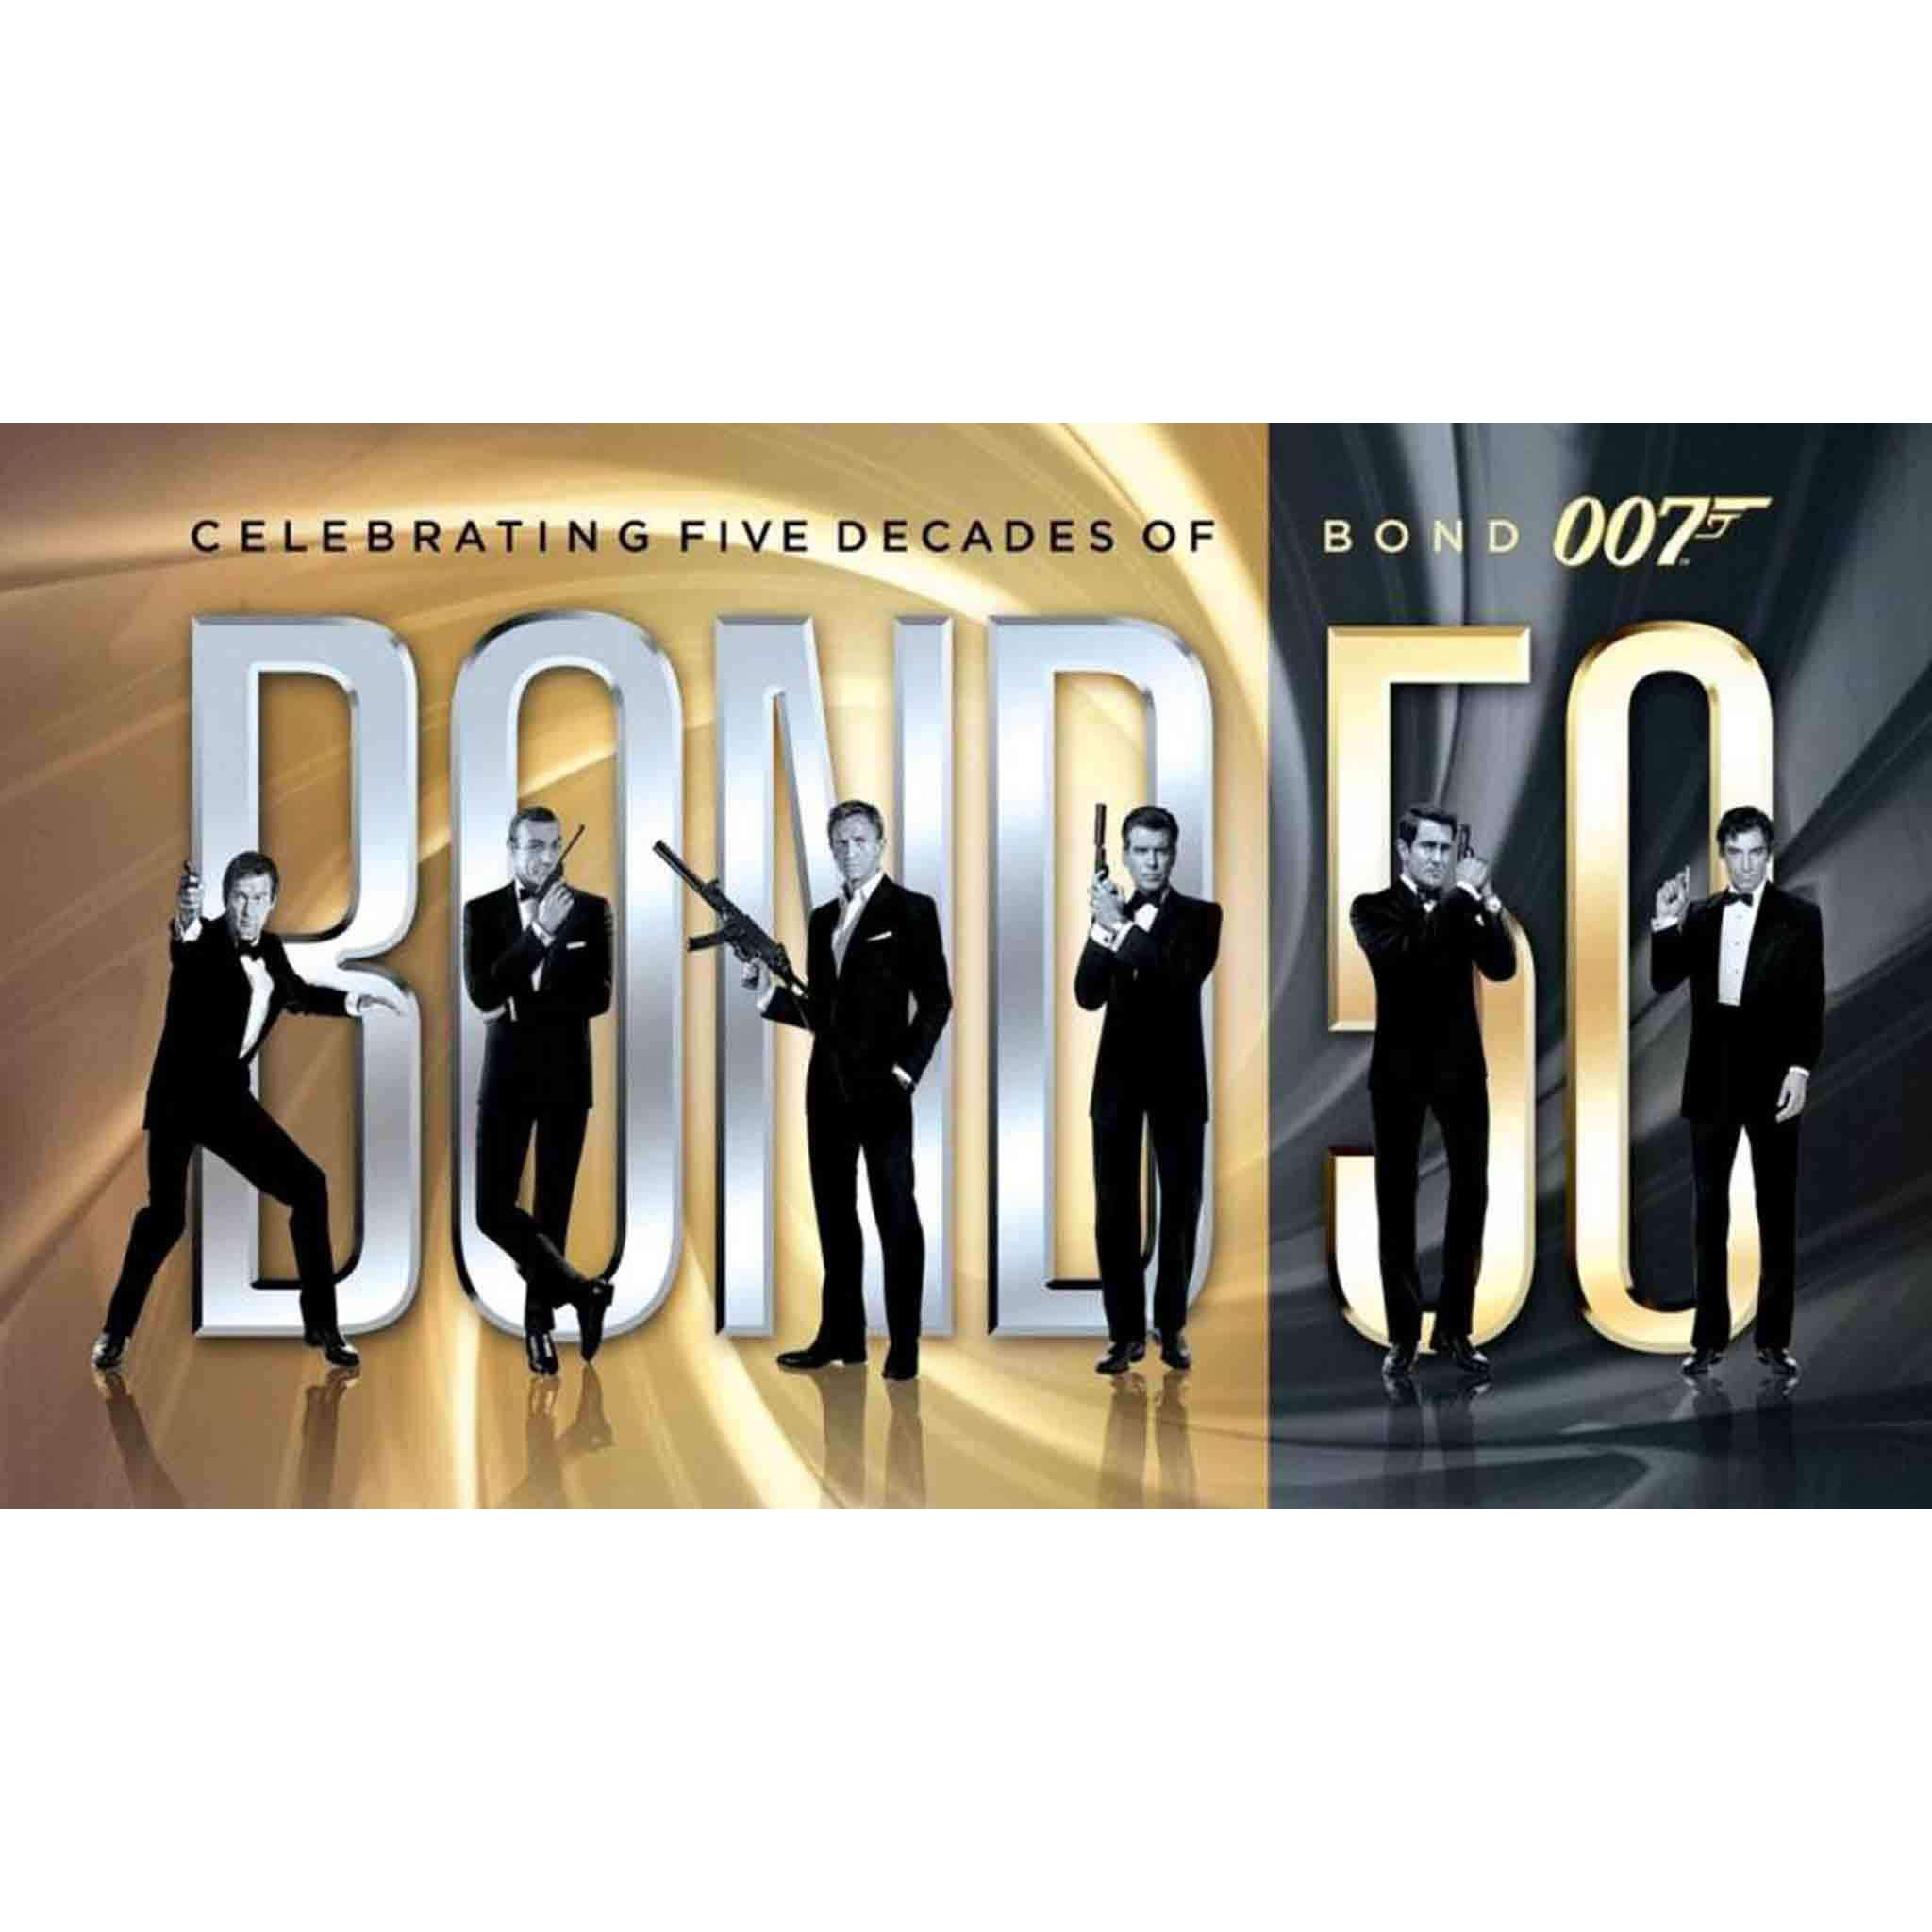 Bond 50 Complete James Bond DVD Box Set Includes all 23 Movies MGM DVDs & Blu-ray Discs > DVDs > Box Sets